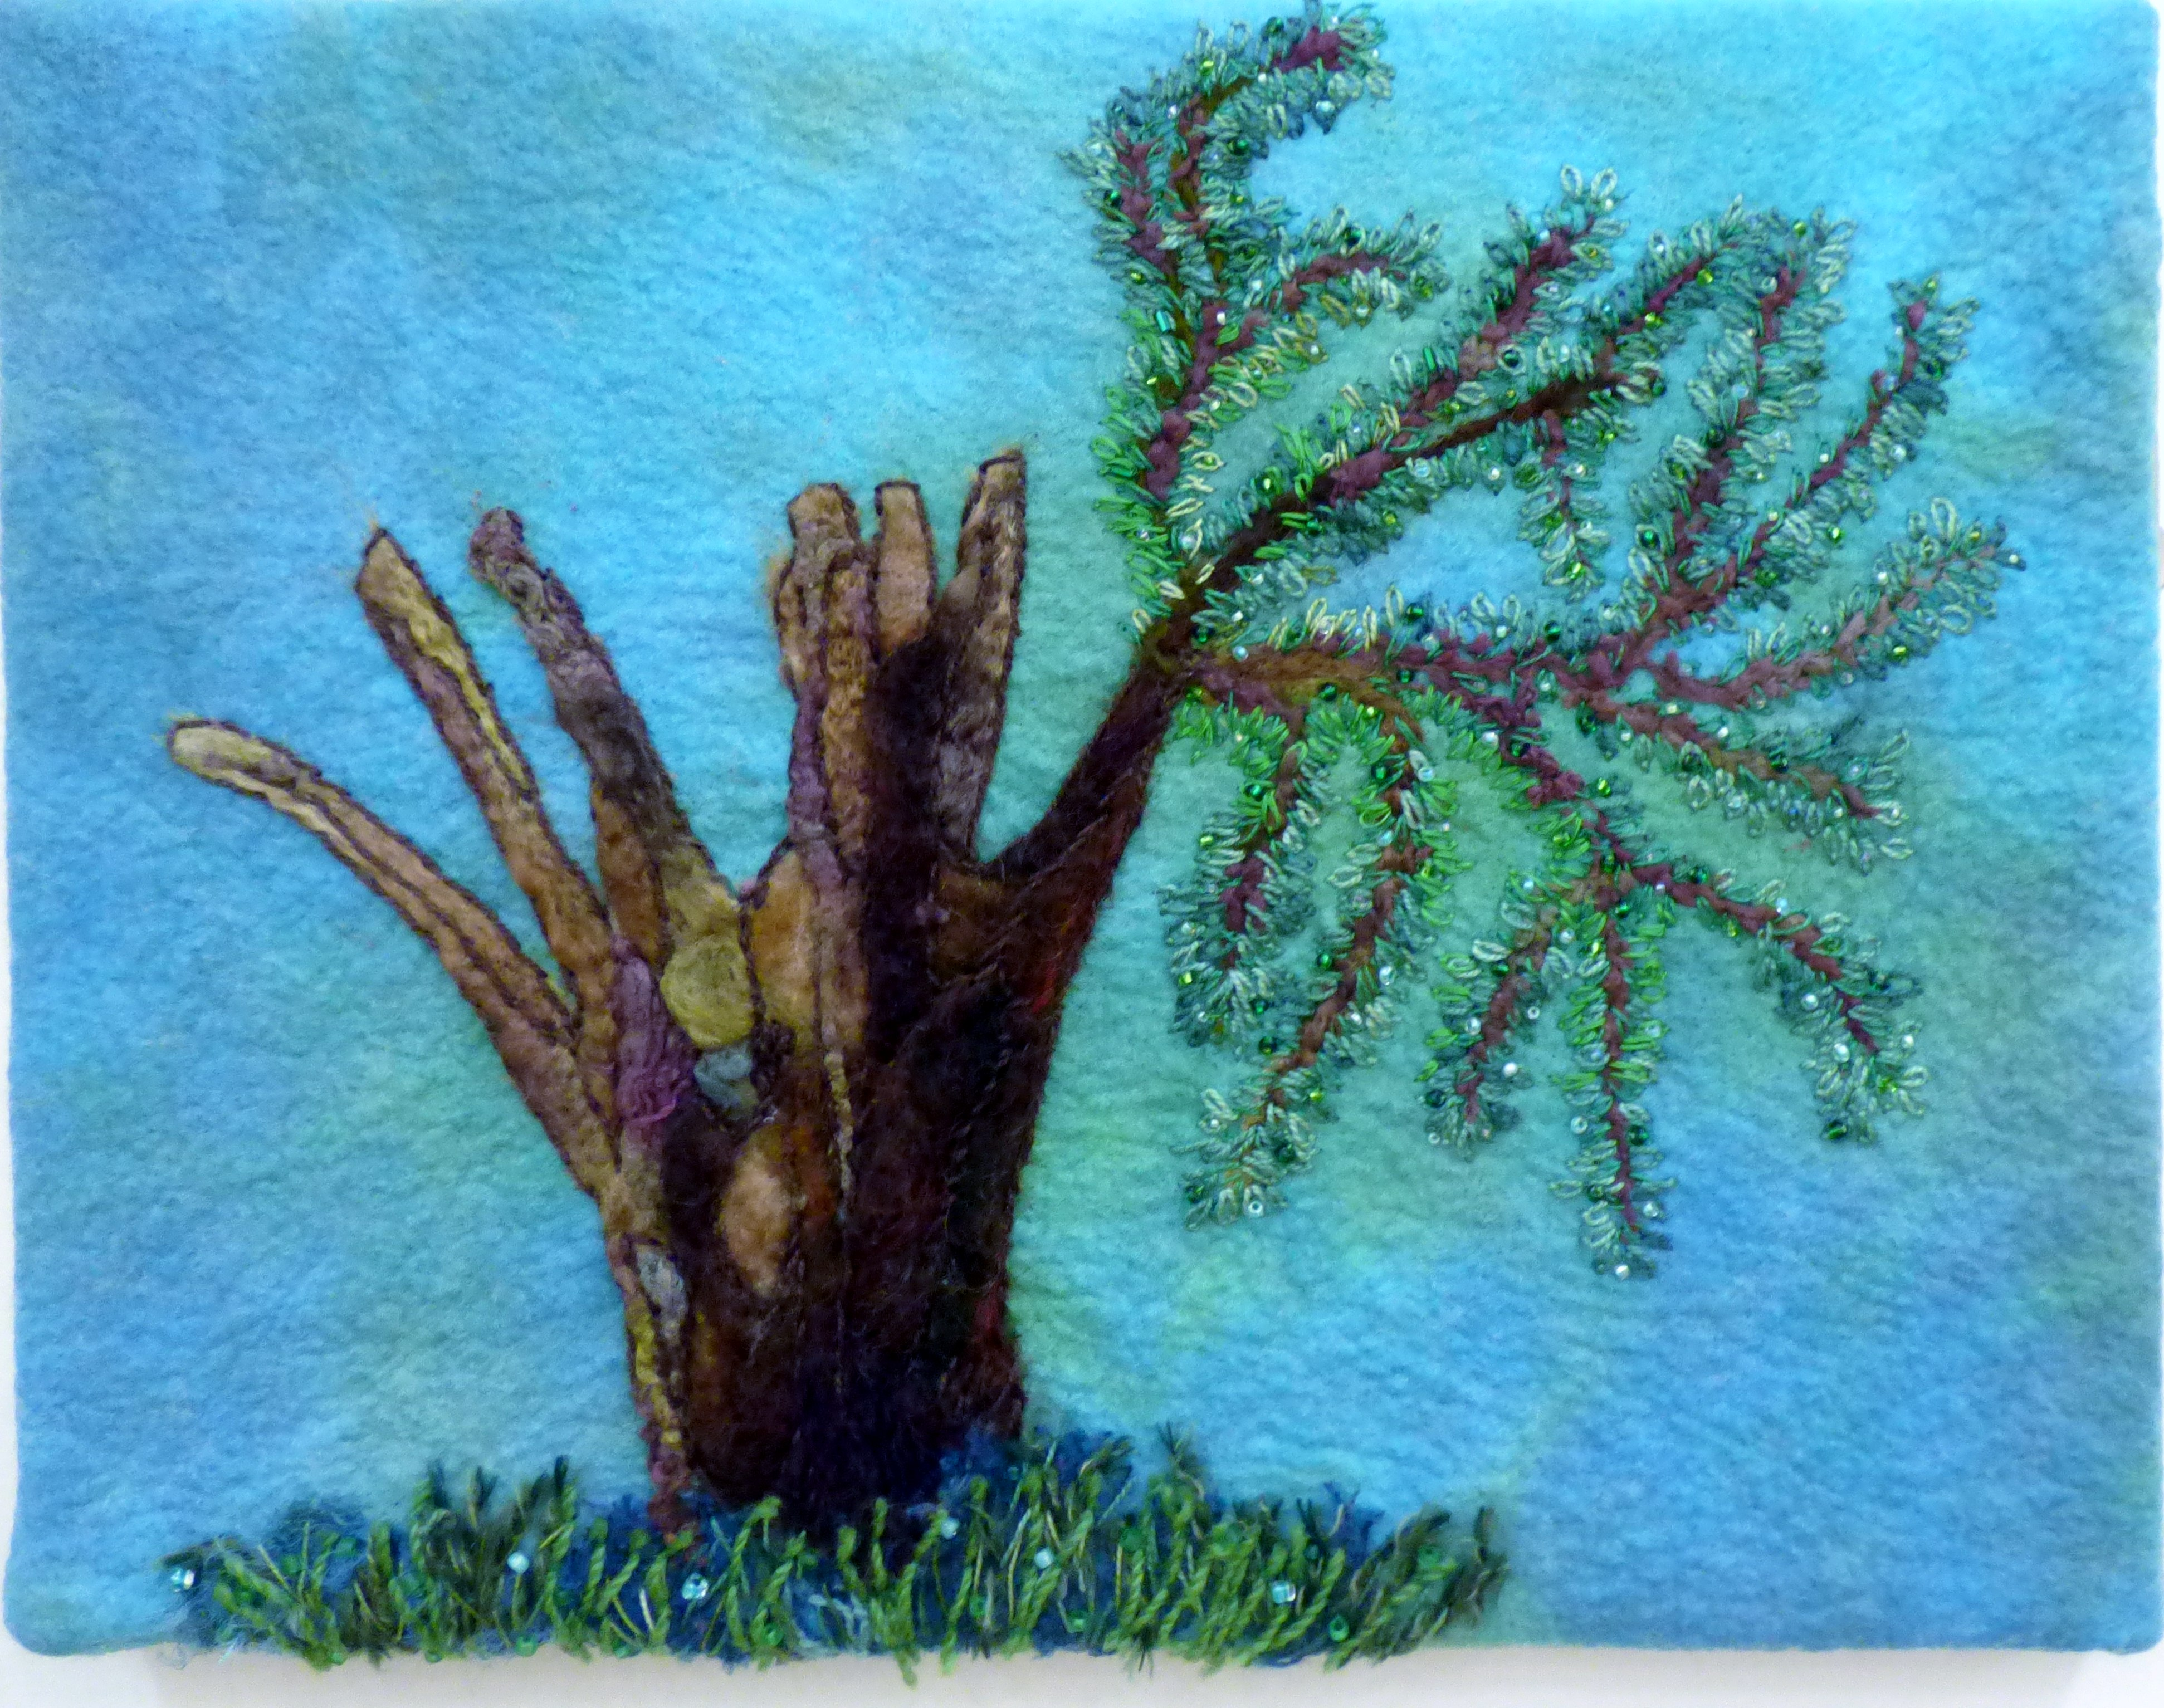 SURVIVAL by Jenny Baker, Macclesfield & District EG, needlefelting and hand embroidery